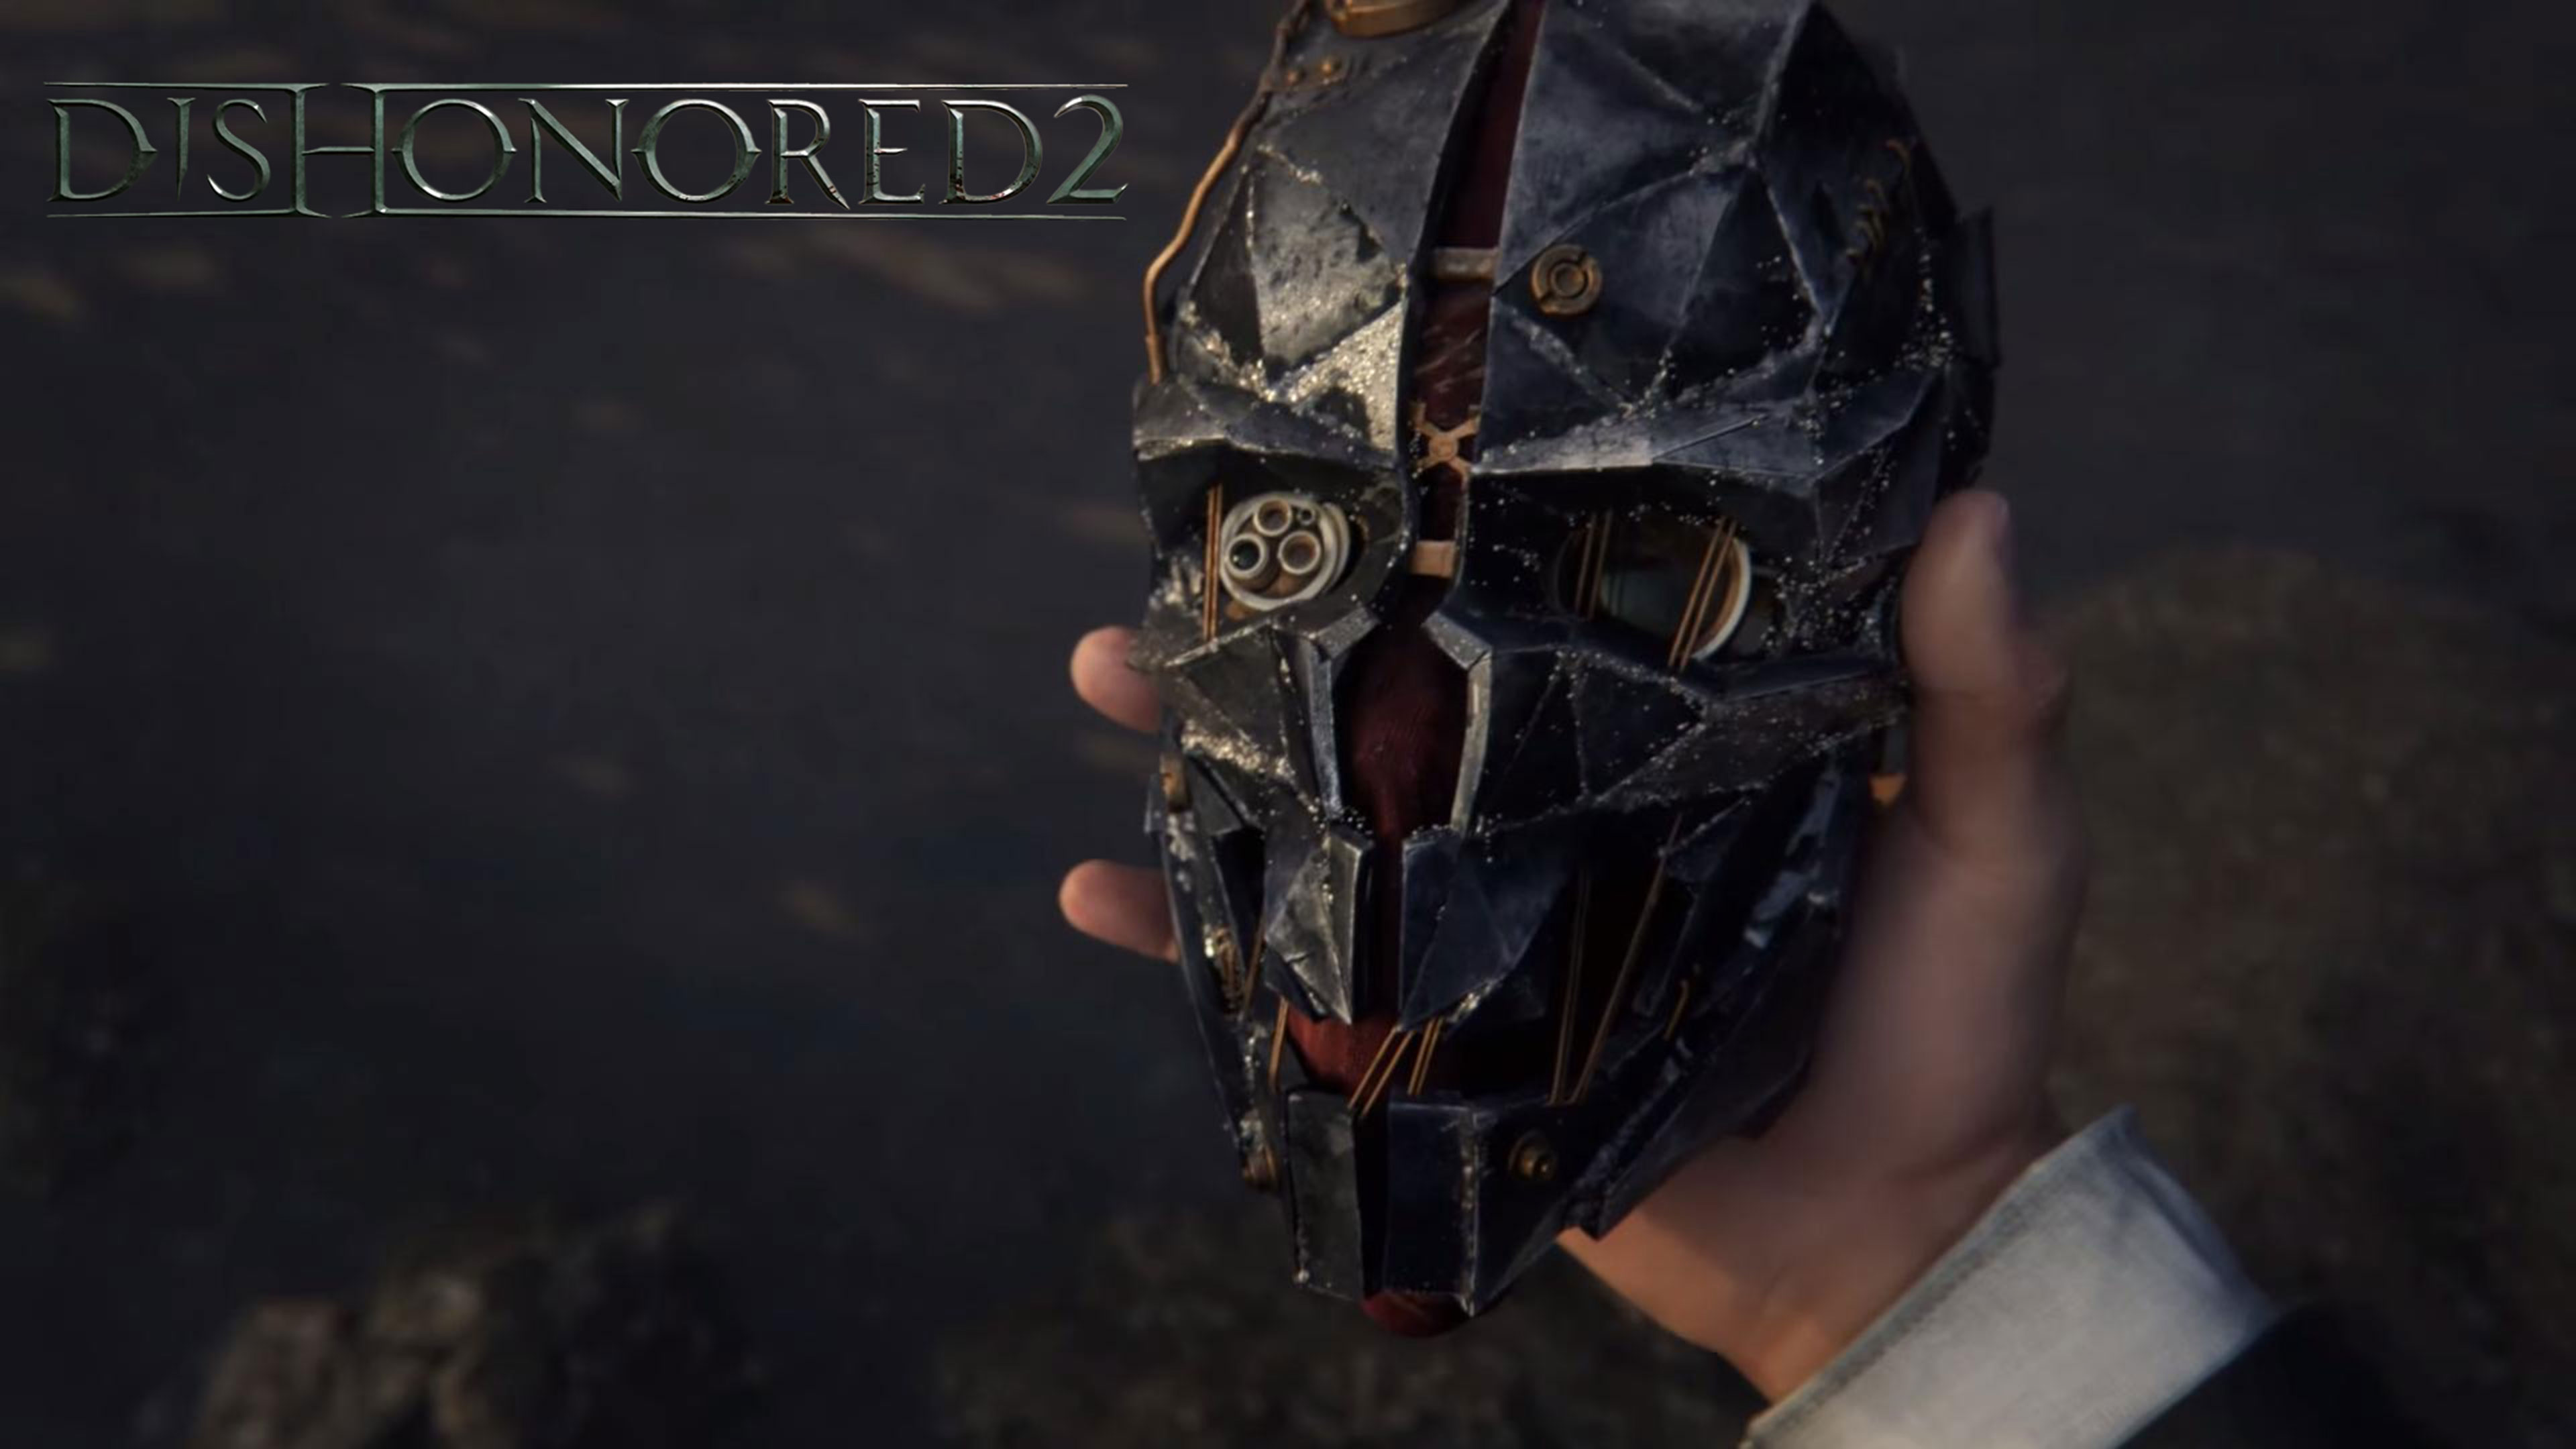 Dishonored 2 Wallpapers In Ultra Hd 4k Gameranx